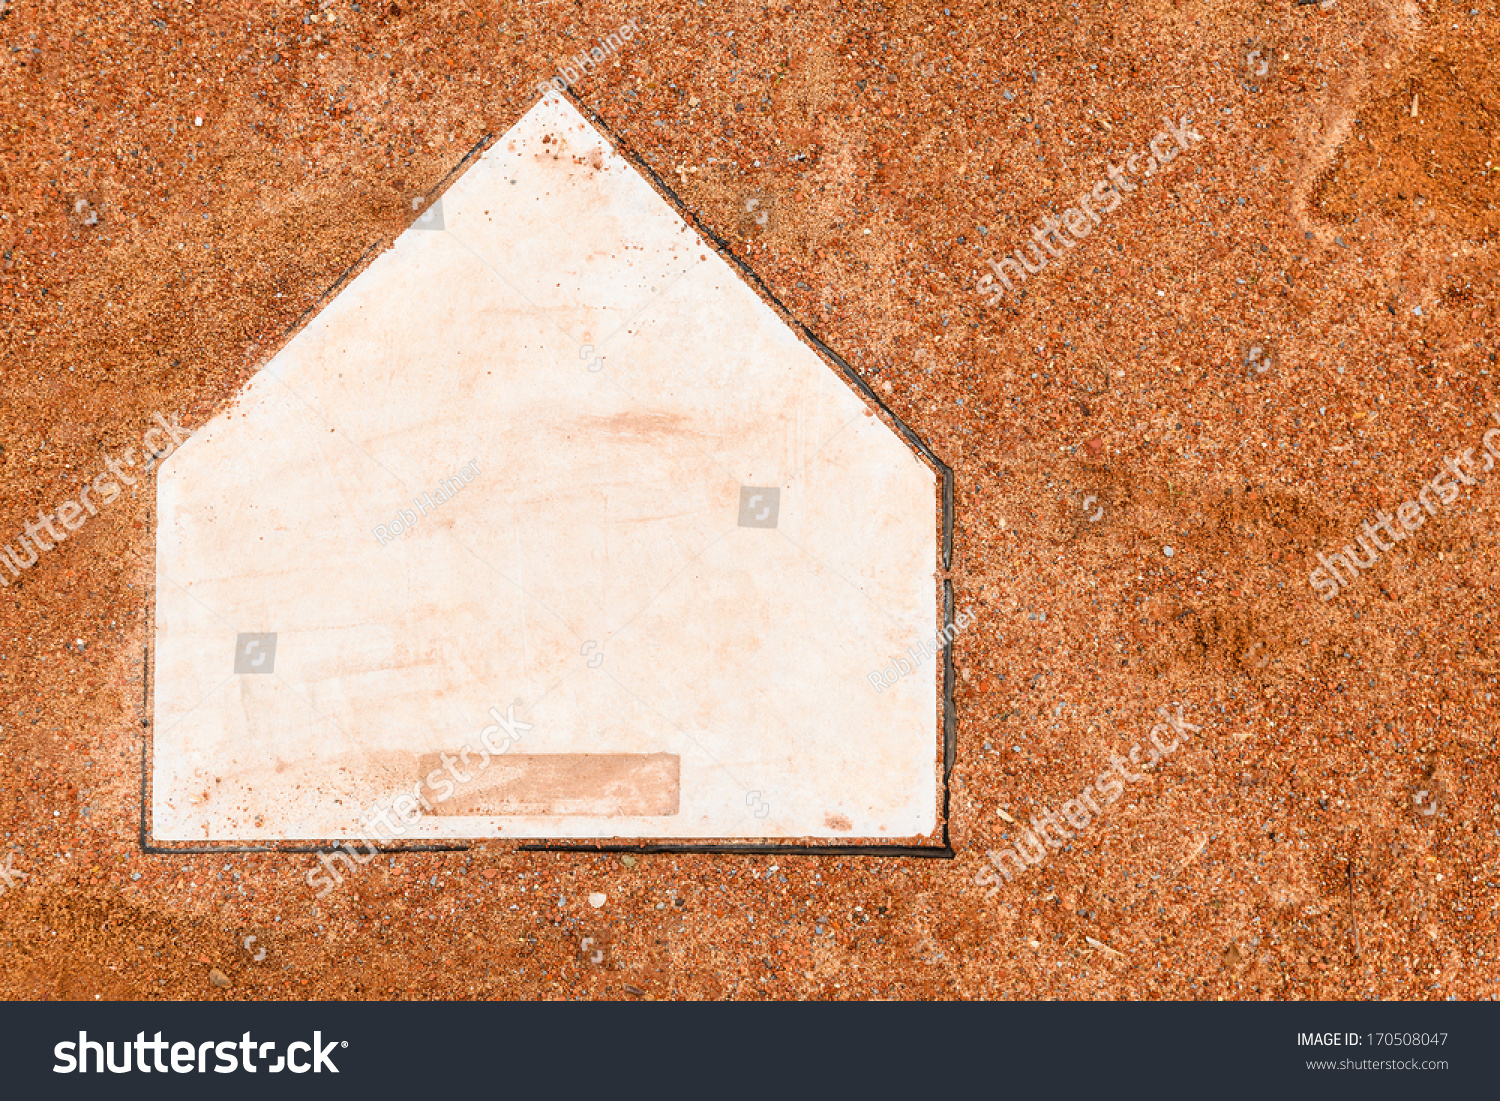 Home Plate On A Baseball Field With Room For Copy